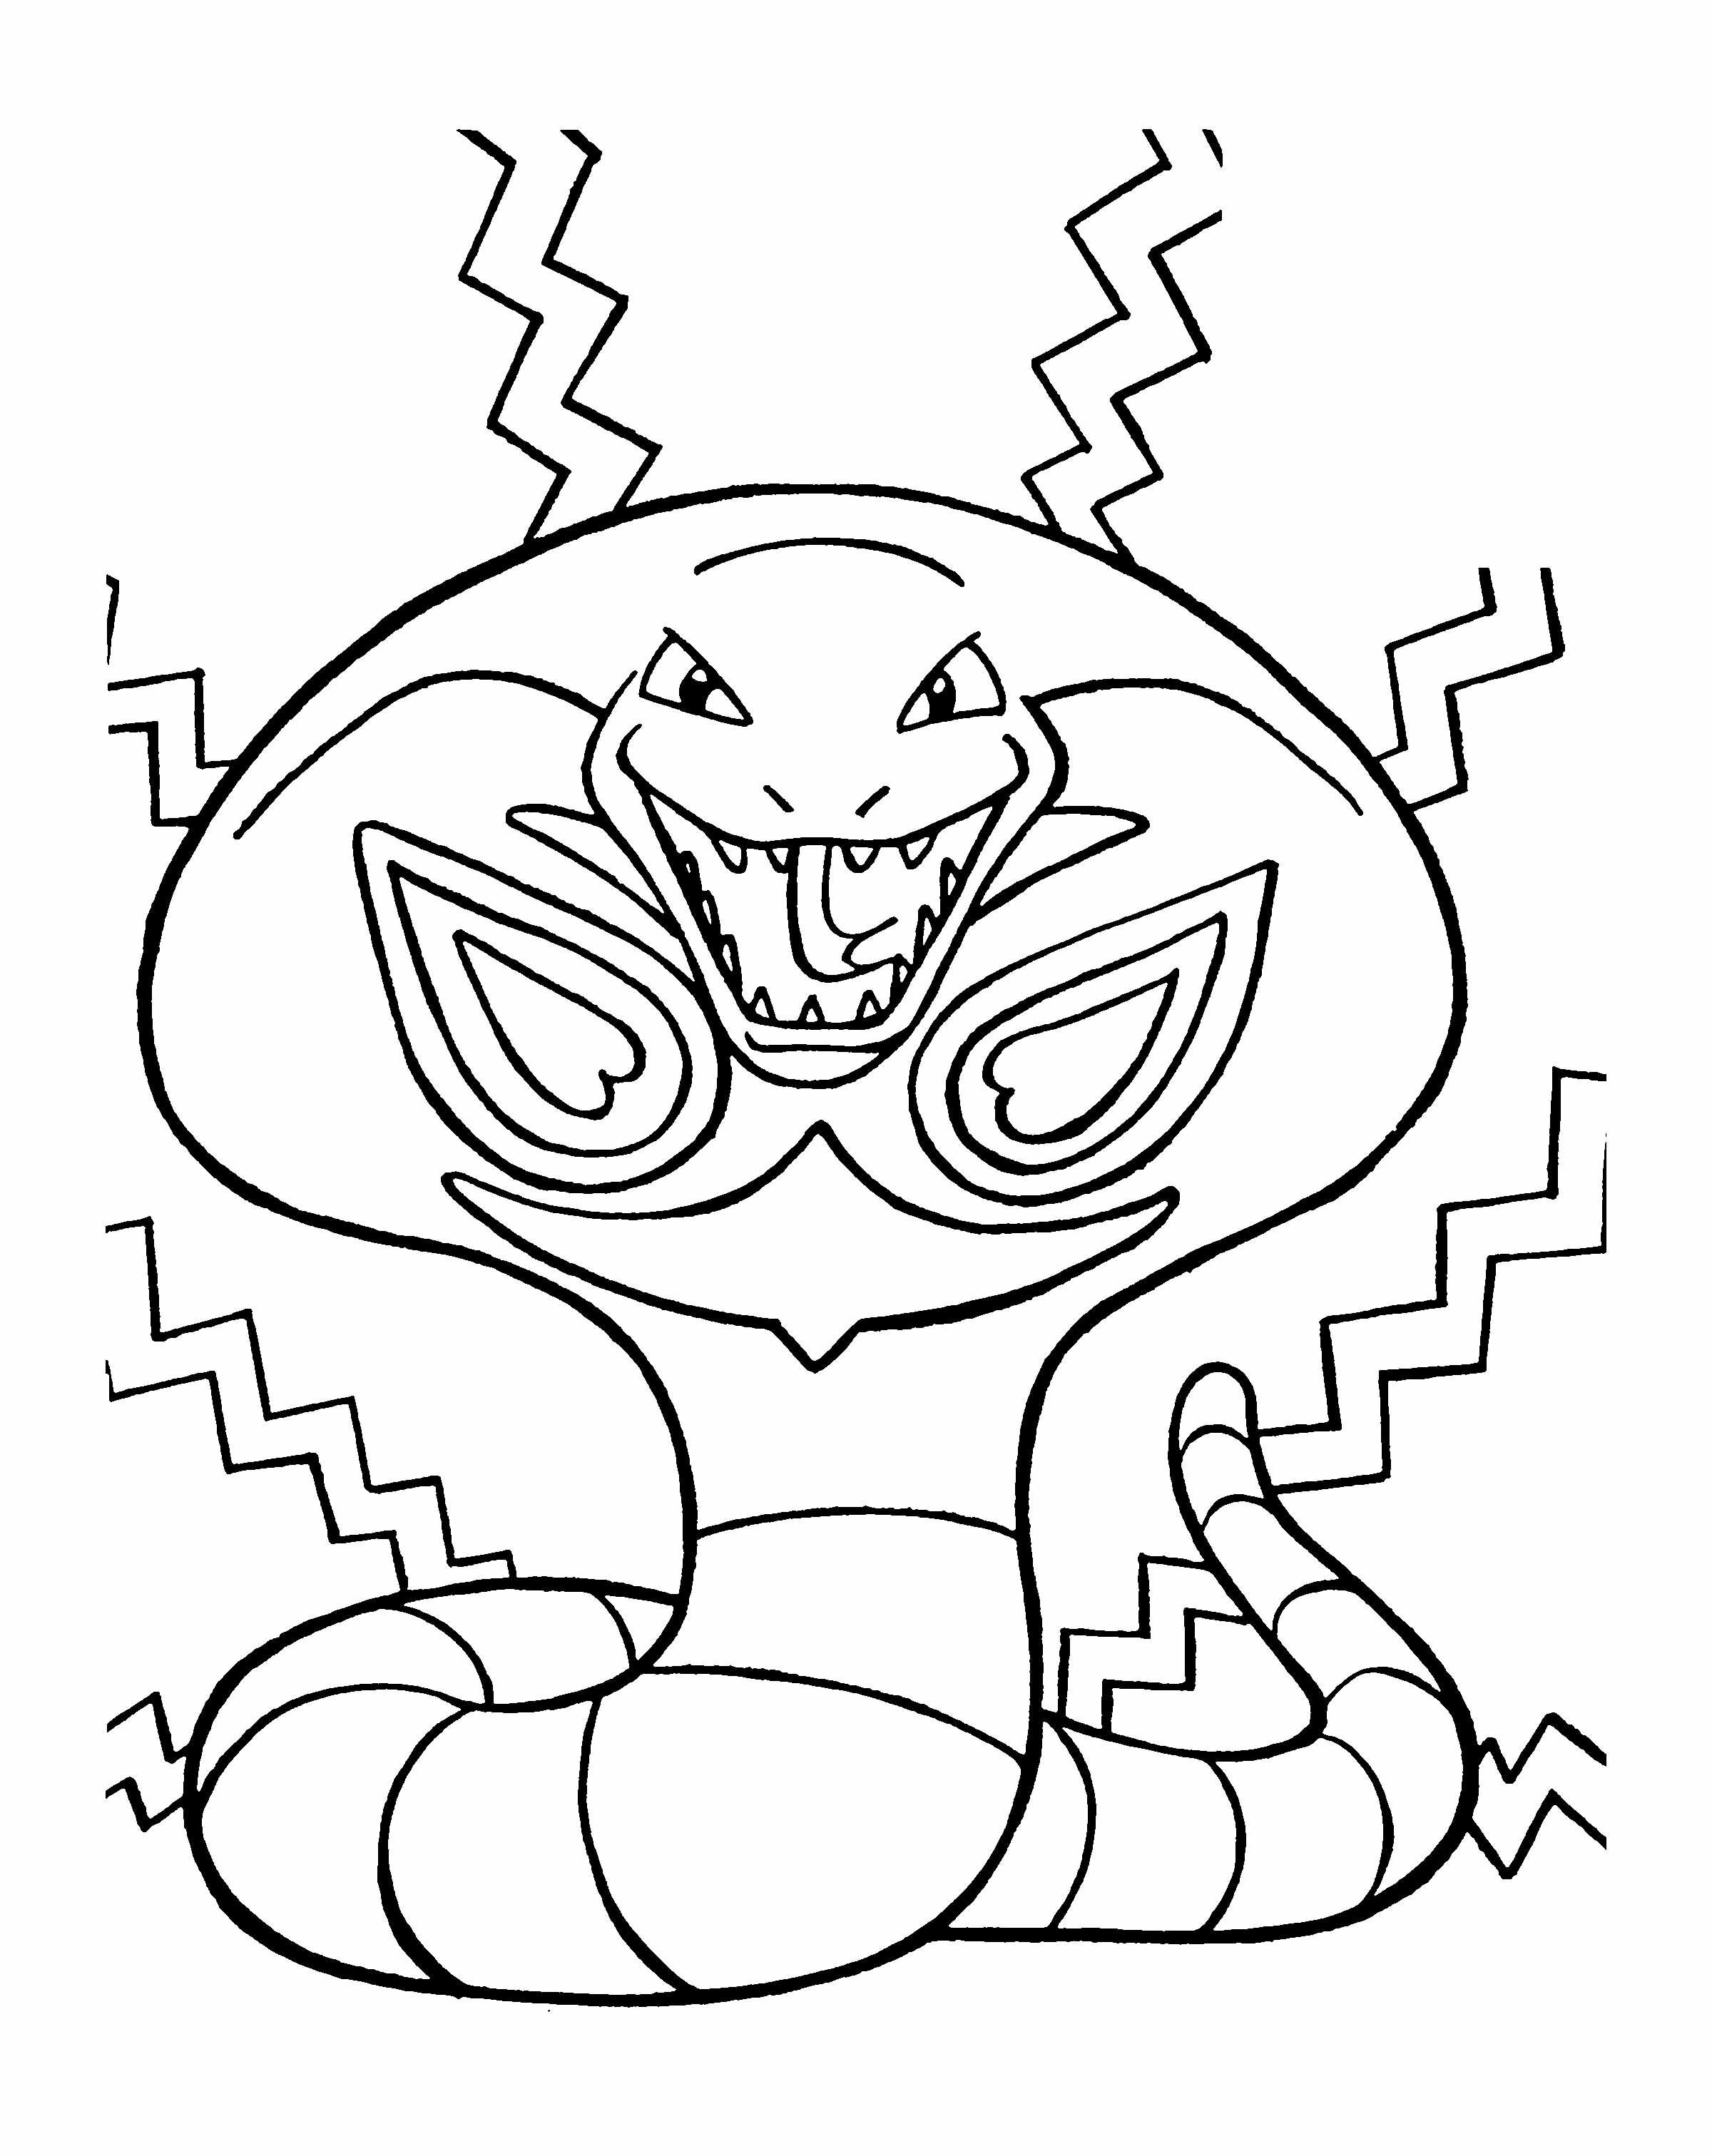 Pokemon The Evil Snake Coloring Page Pokemon coloring